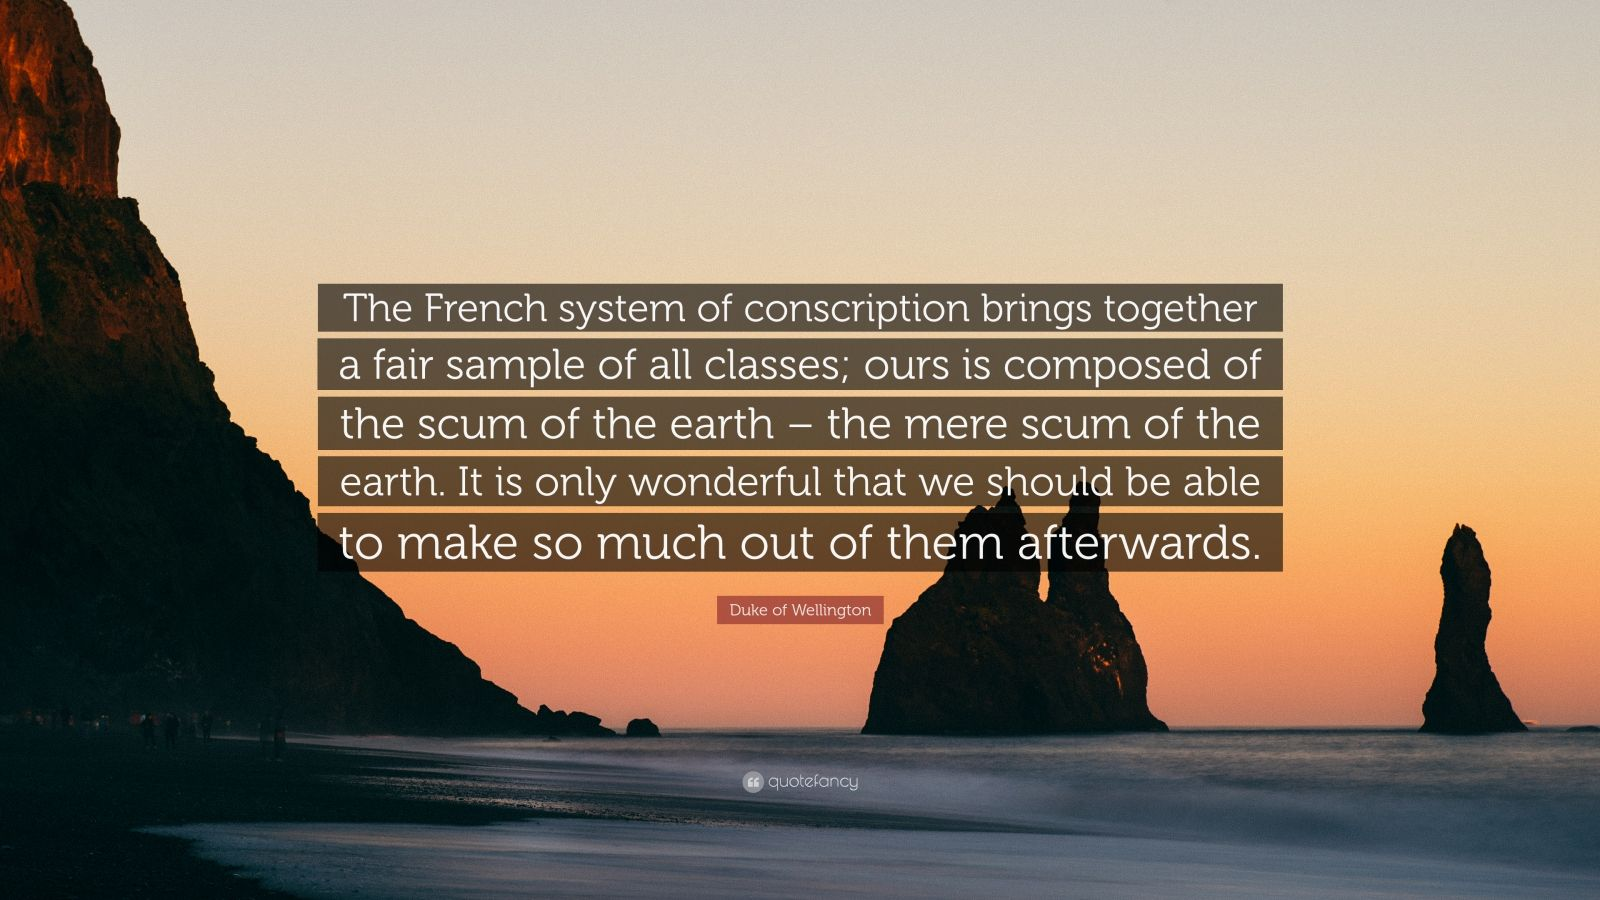 """Duke of Wellington Quote: """"The French system of conscription brings together a fair sample of all classes; ours is composed of the scum of the earth – the mere scum of the earth. It is only wonderful that we should be able to make so much out of them afterwards."""""""